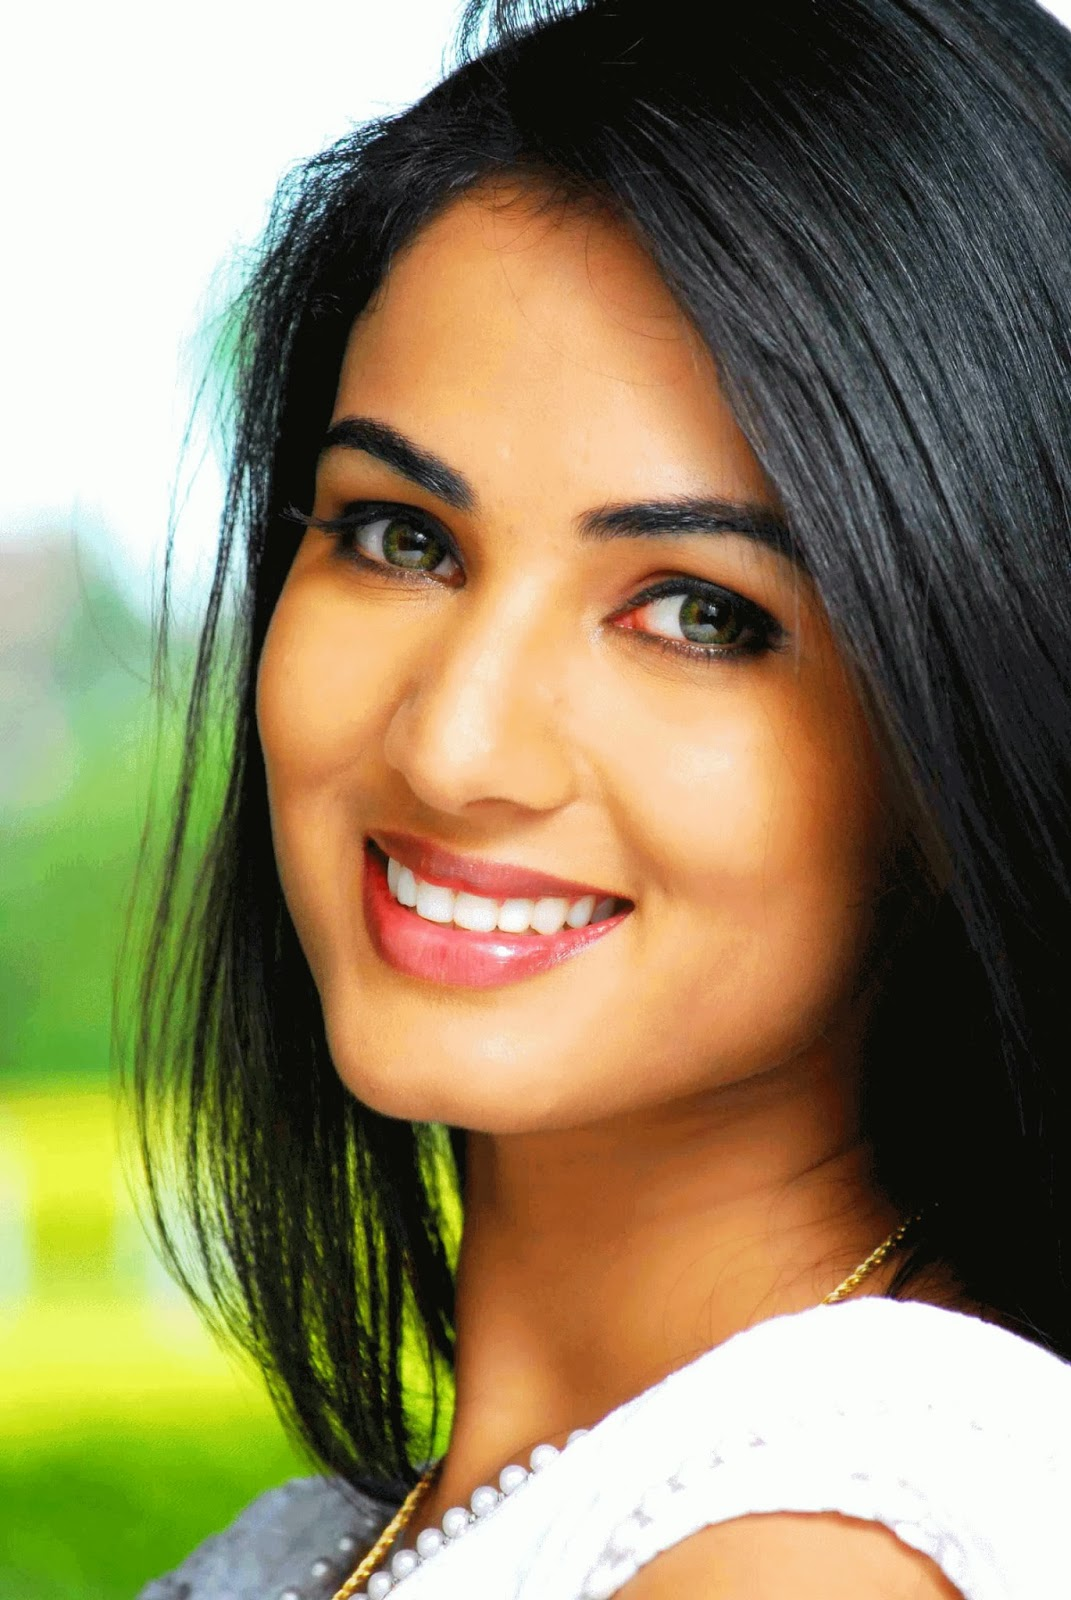 All New Wallpaper  Sonal Chauhan Hd Wallpapers Free Download-5166